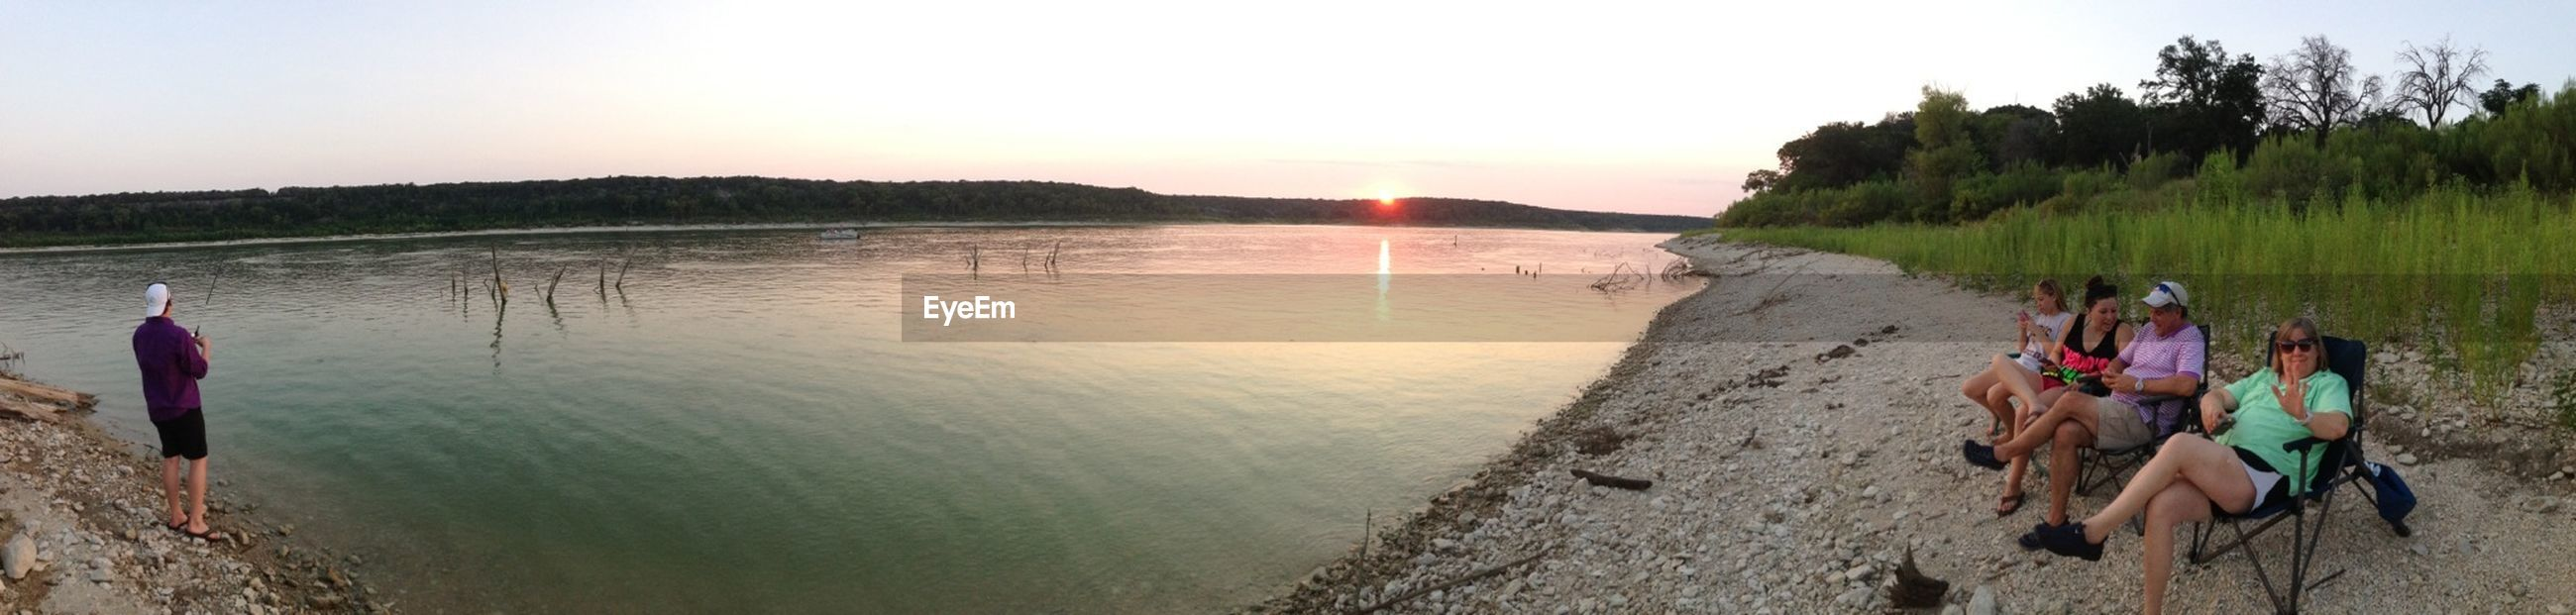 water, tranquil scene, tranquility, scenics, clear sky, beauty in nature, nature, beach, tree, sky, incidental people, sunset, leisure activity, idyllic, sea, lake, sand, shore, sunlight